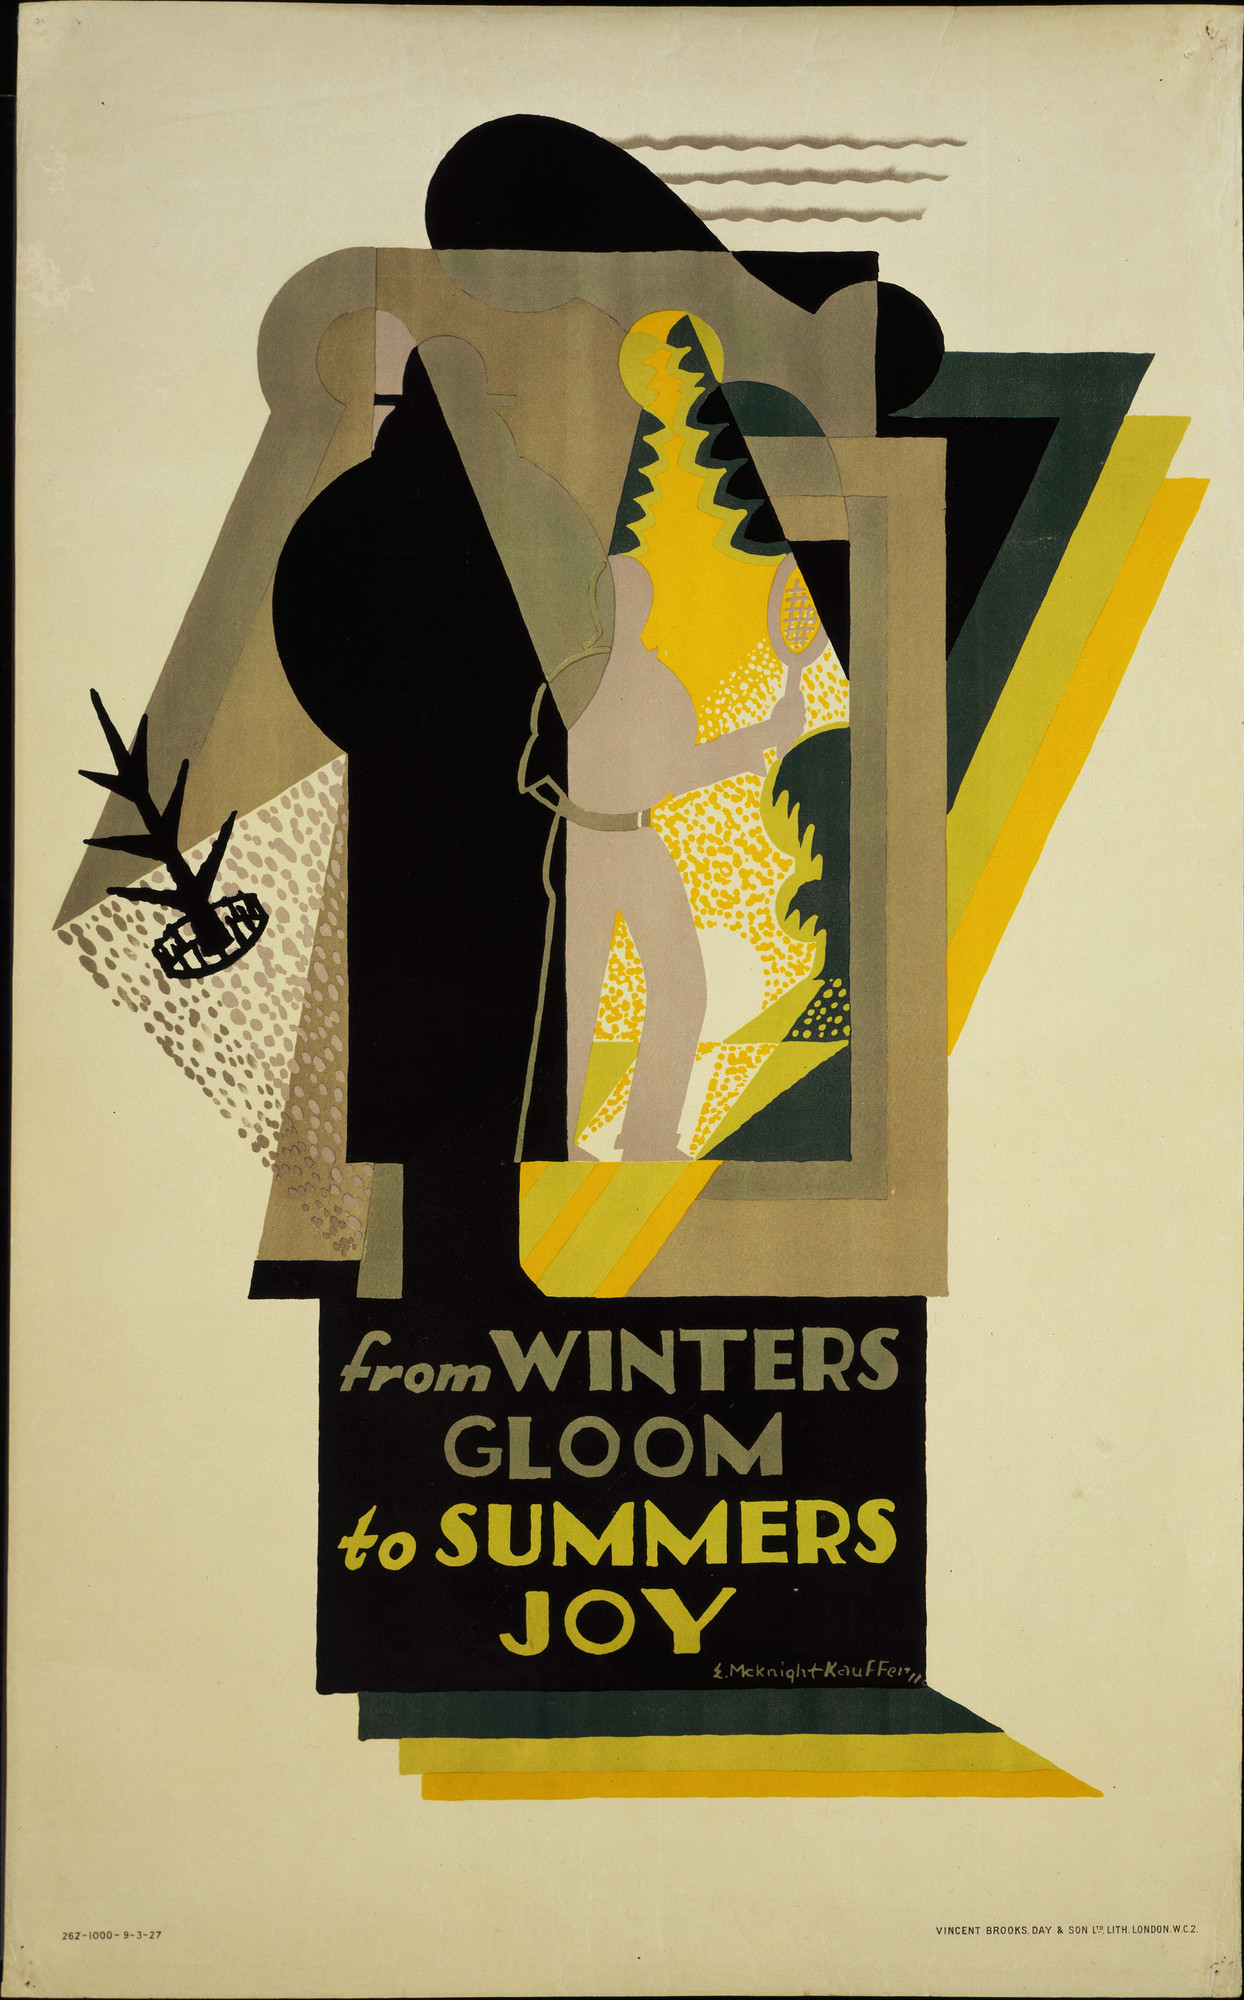 E. McKnight Kauffer. From Winters Gloom to Summers Joy. 1927